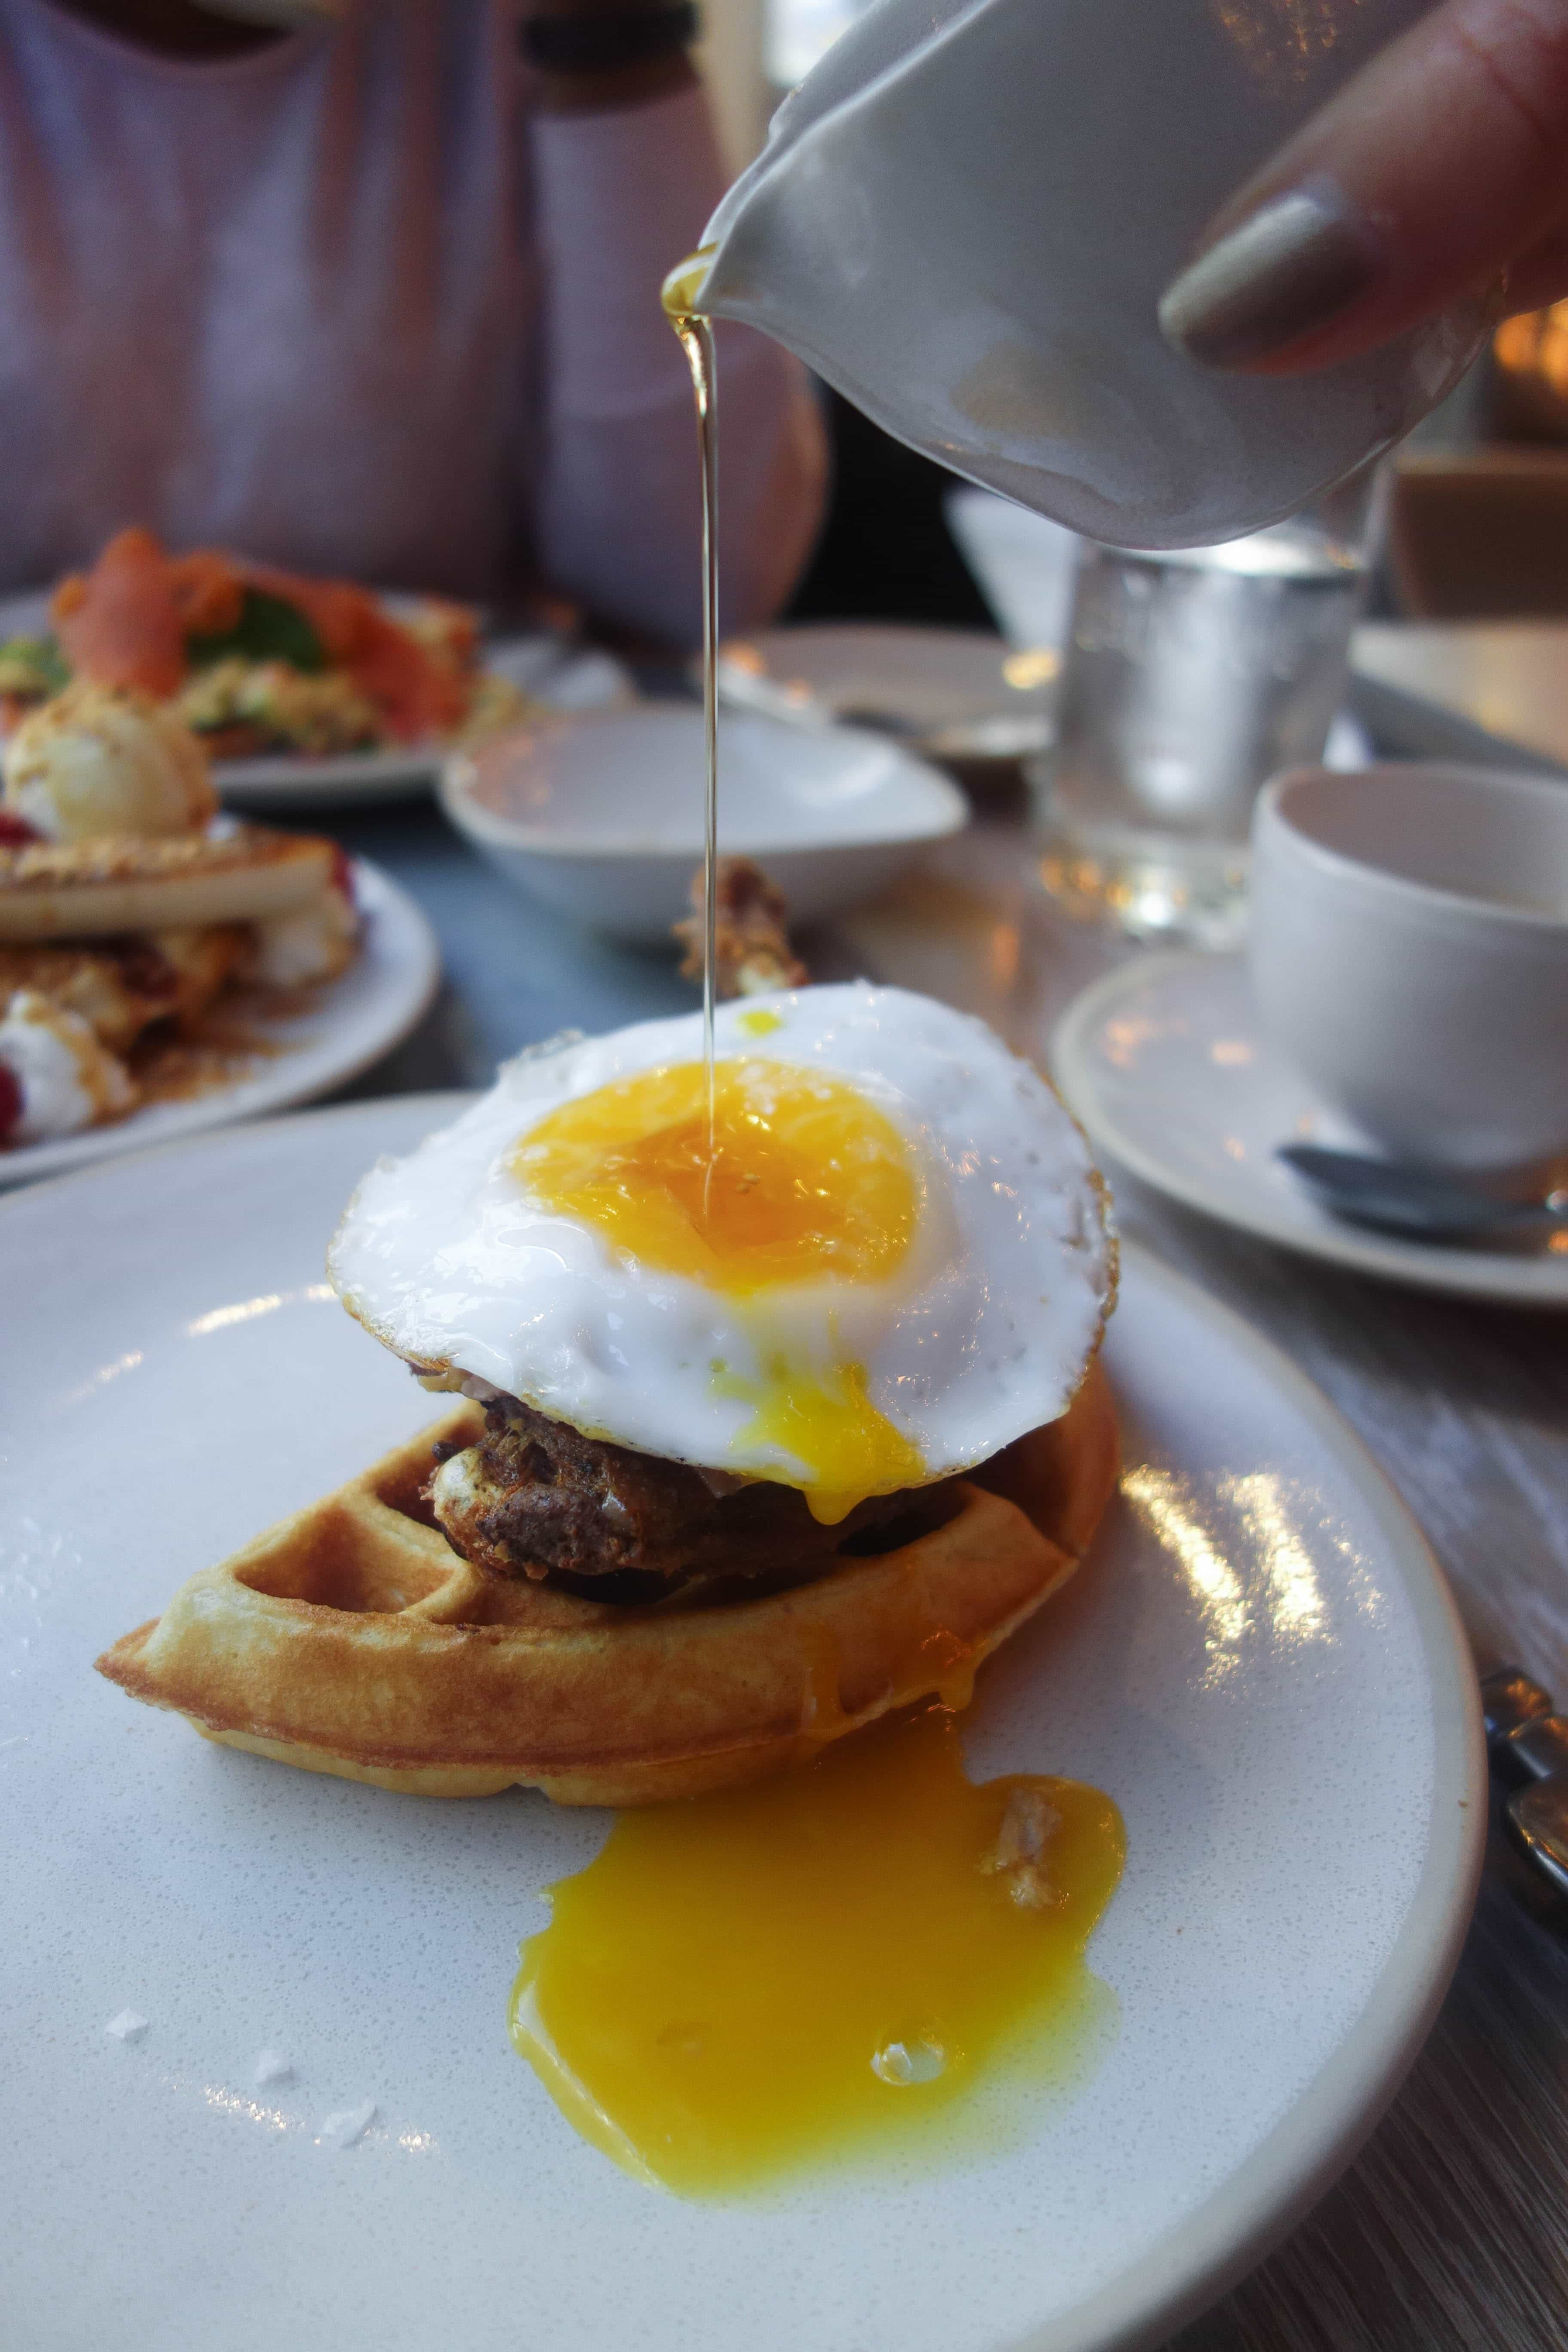 Duck & Waffle Local - 3 Brunch Places Youll Love In London